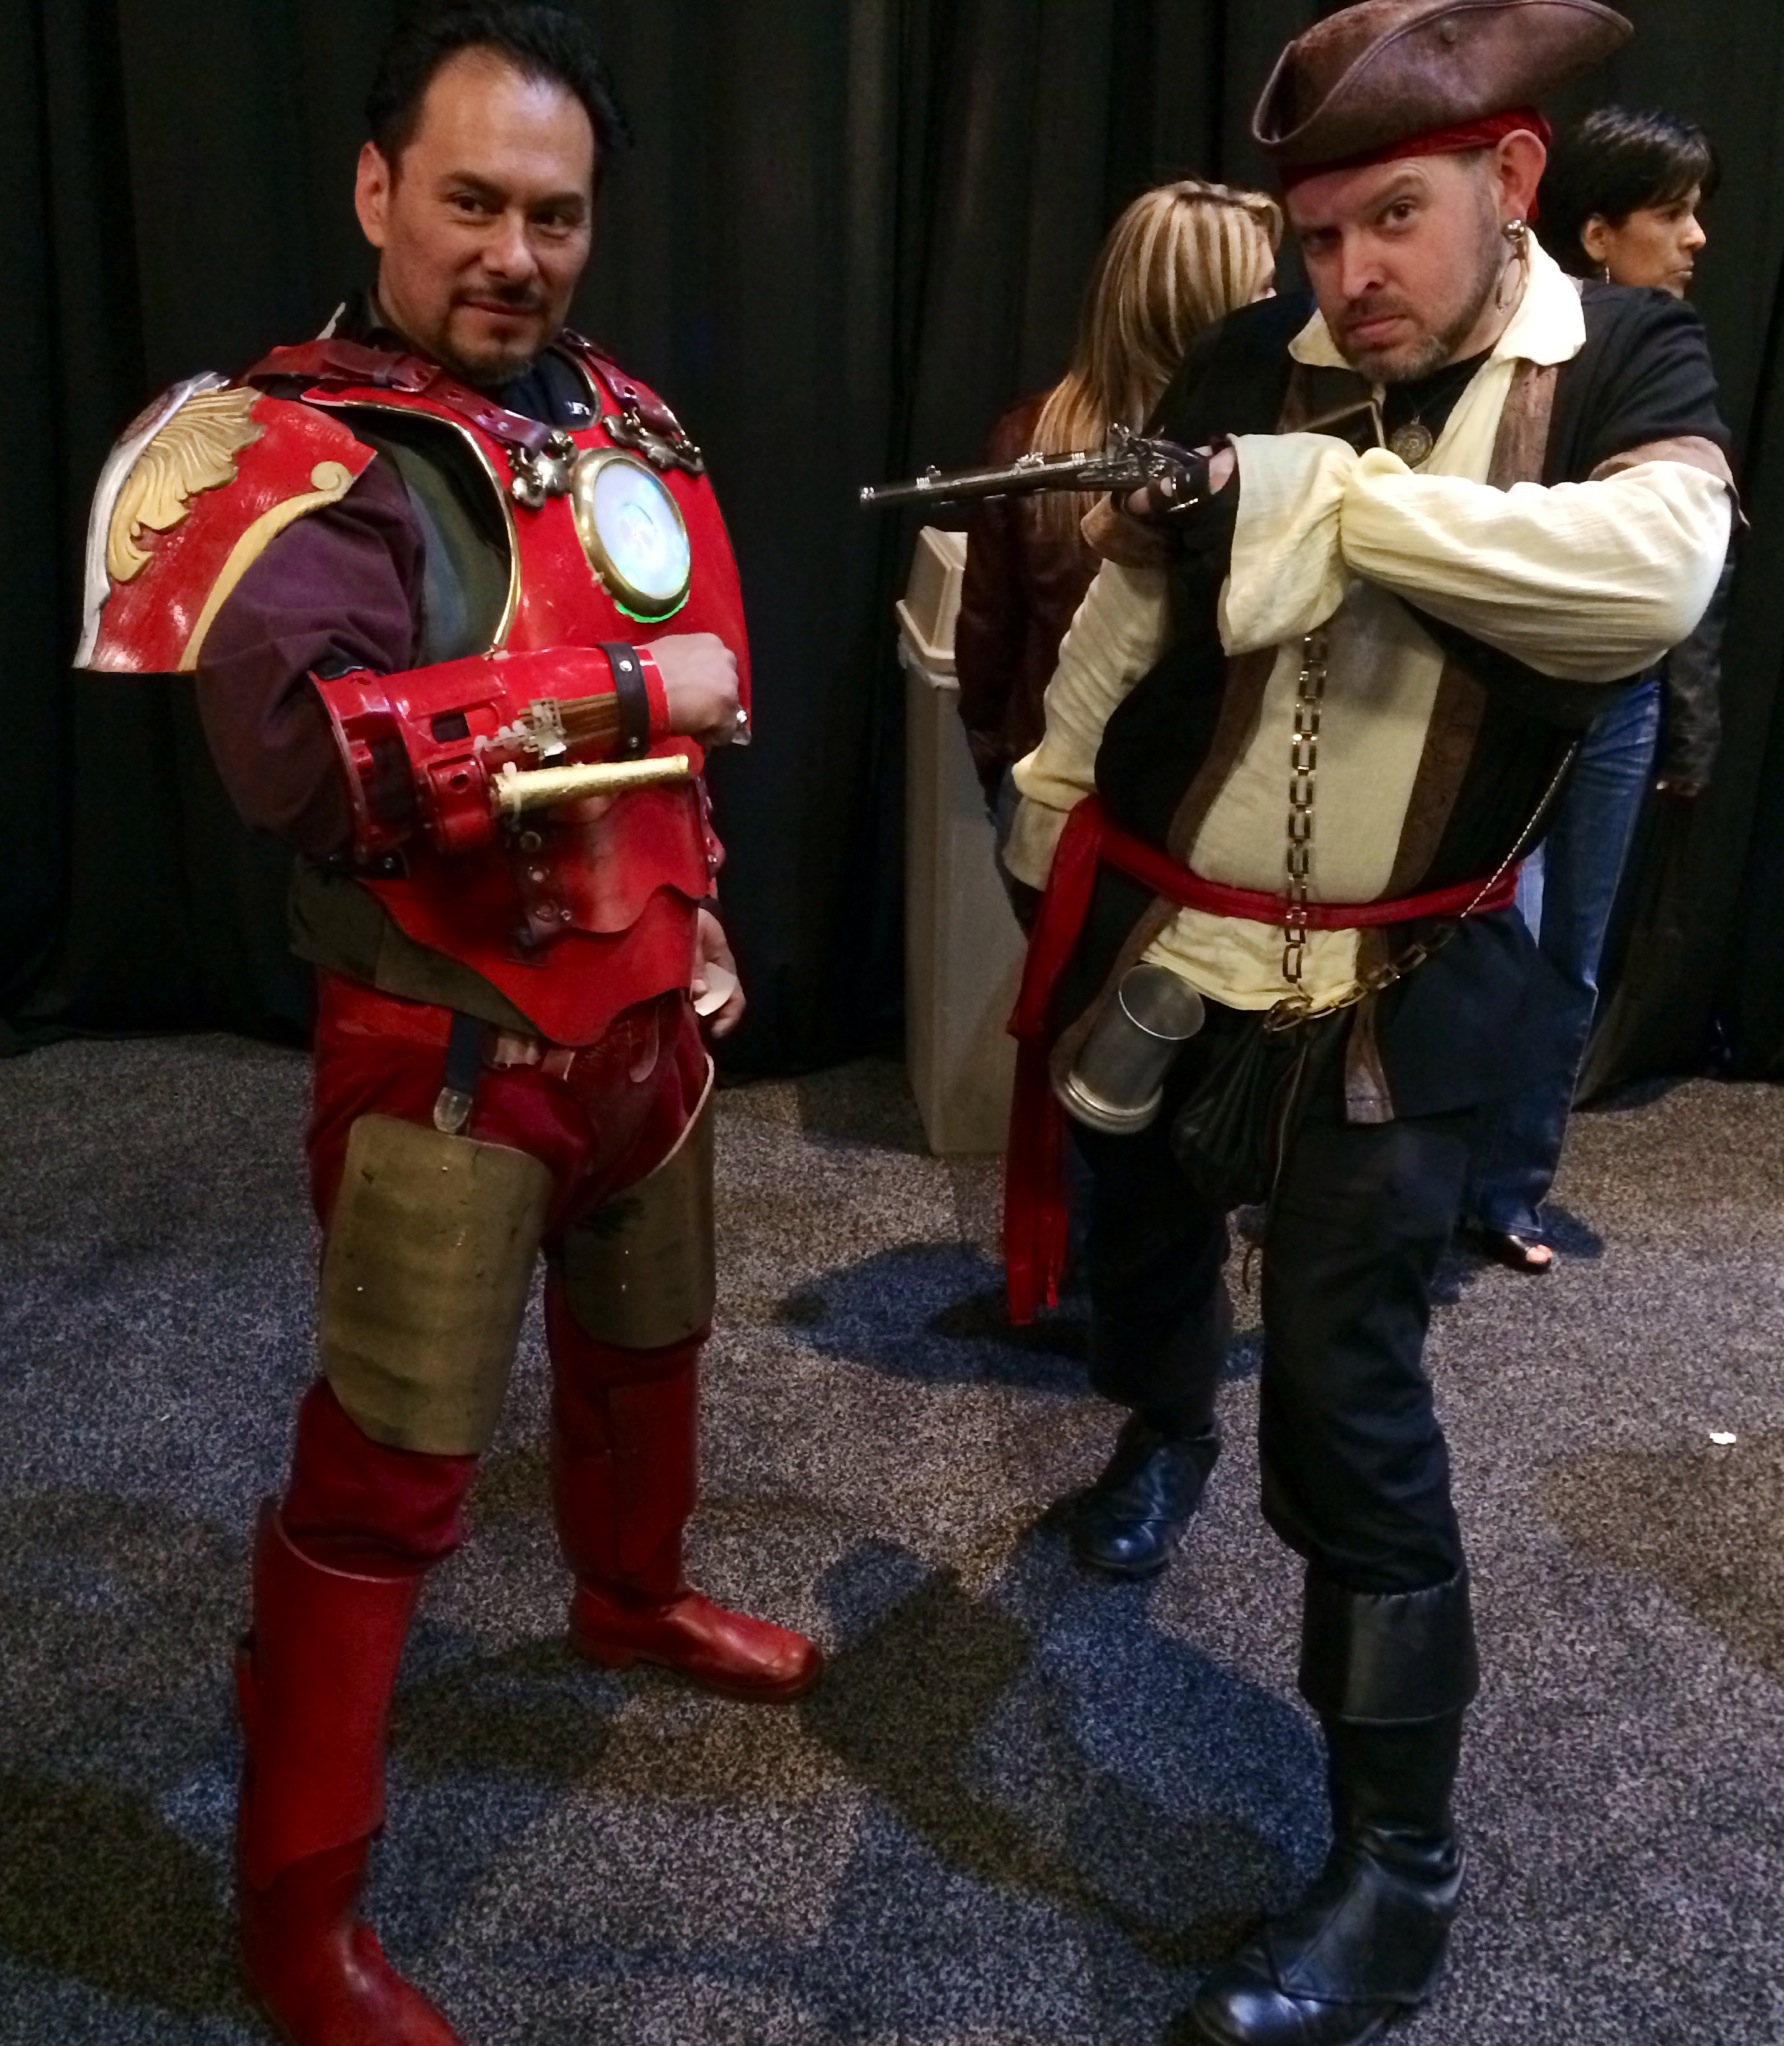 Cosplayers Are Probably the Only People Having Fun at SXSW ...